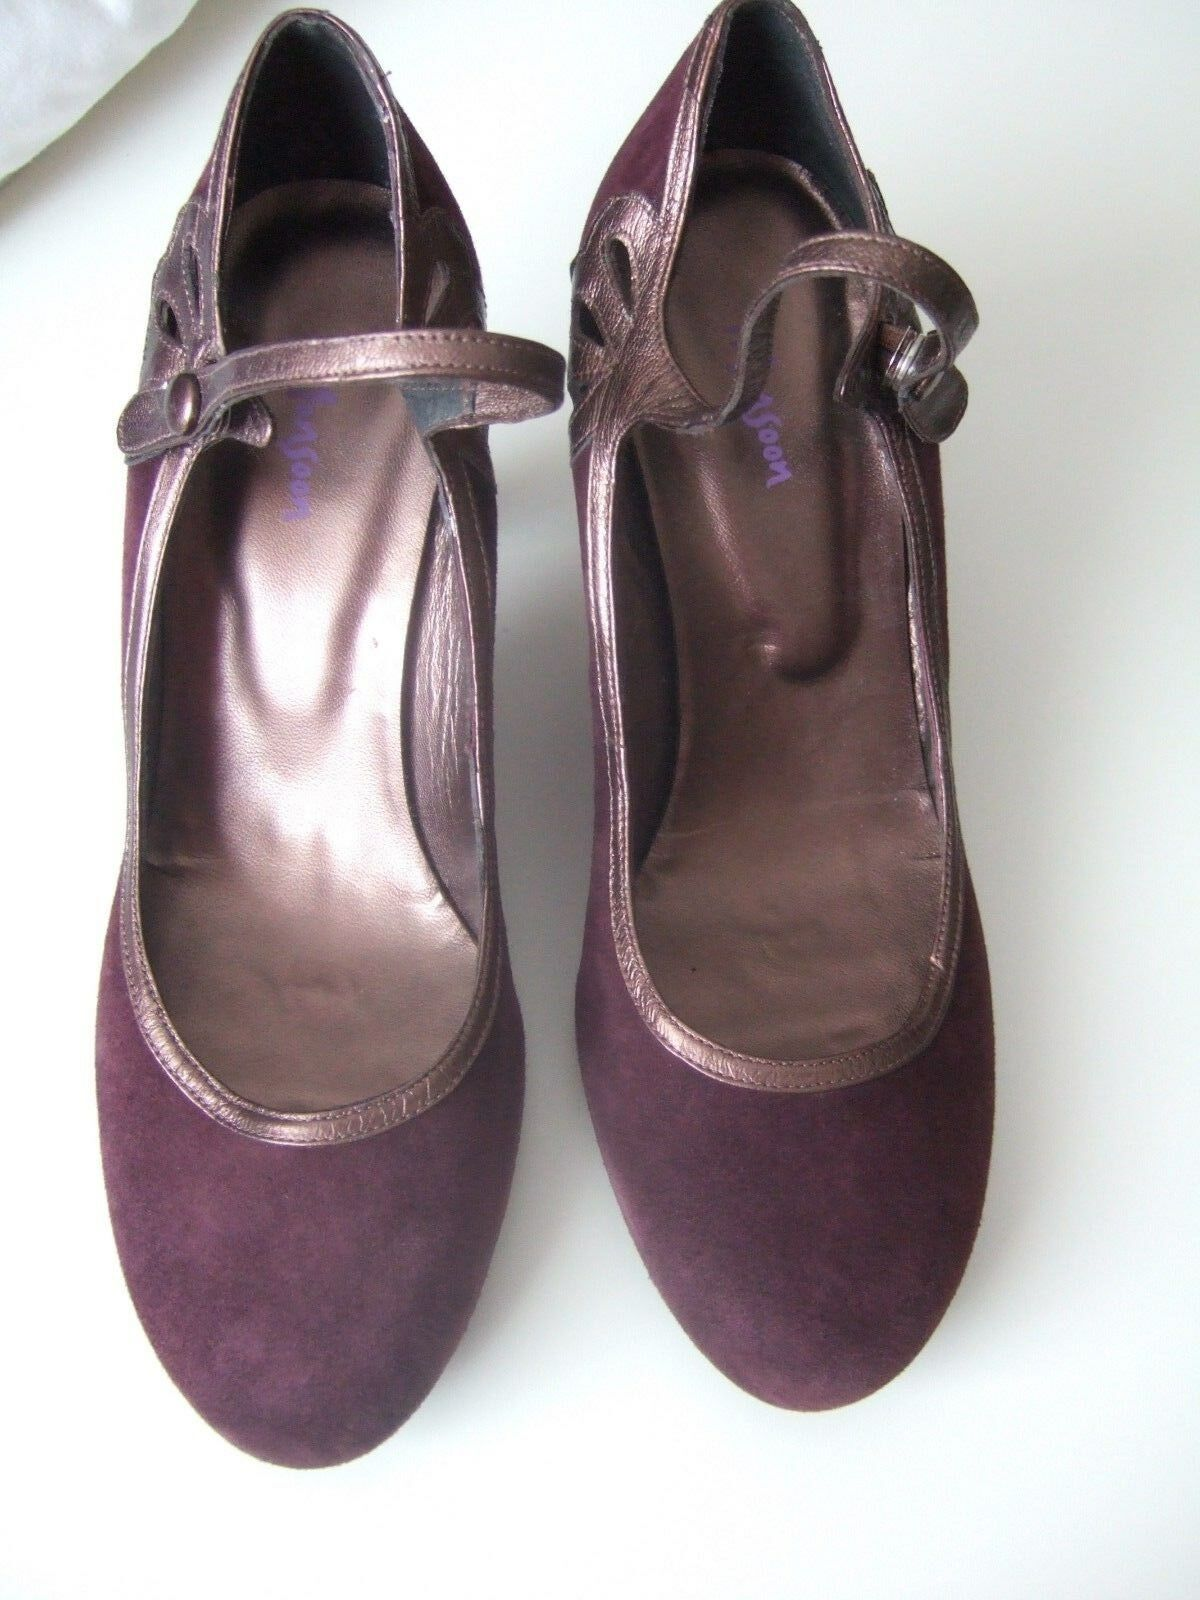 MONSOON Shoes UNWORN Plum Suede 'MaryJane' Shoes MONSOON with Bronze Trim. Size 41 RRP .00! 977e48